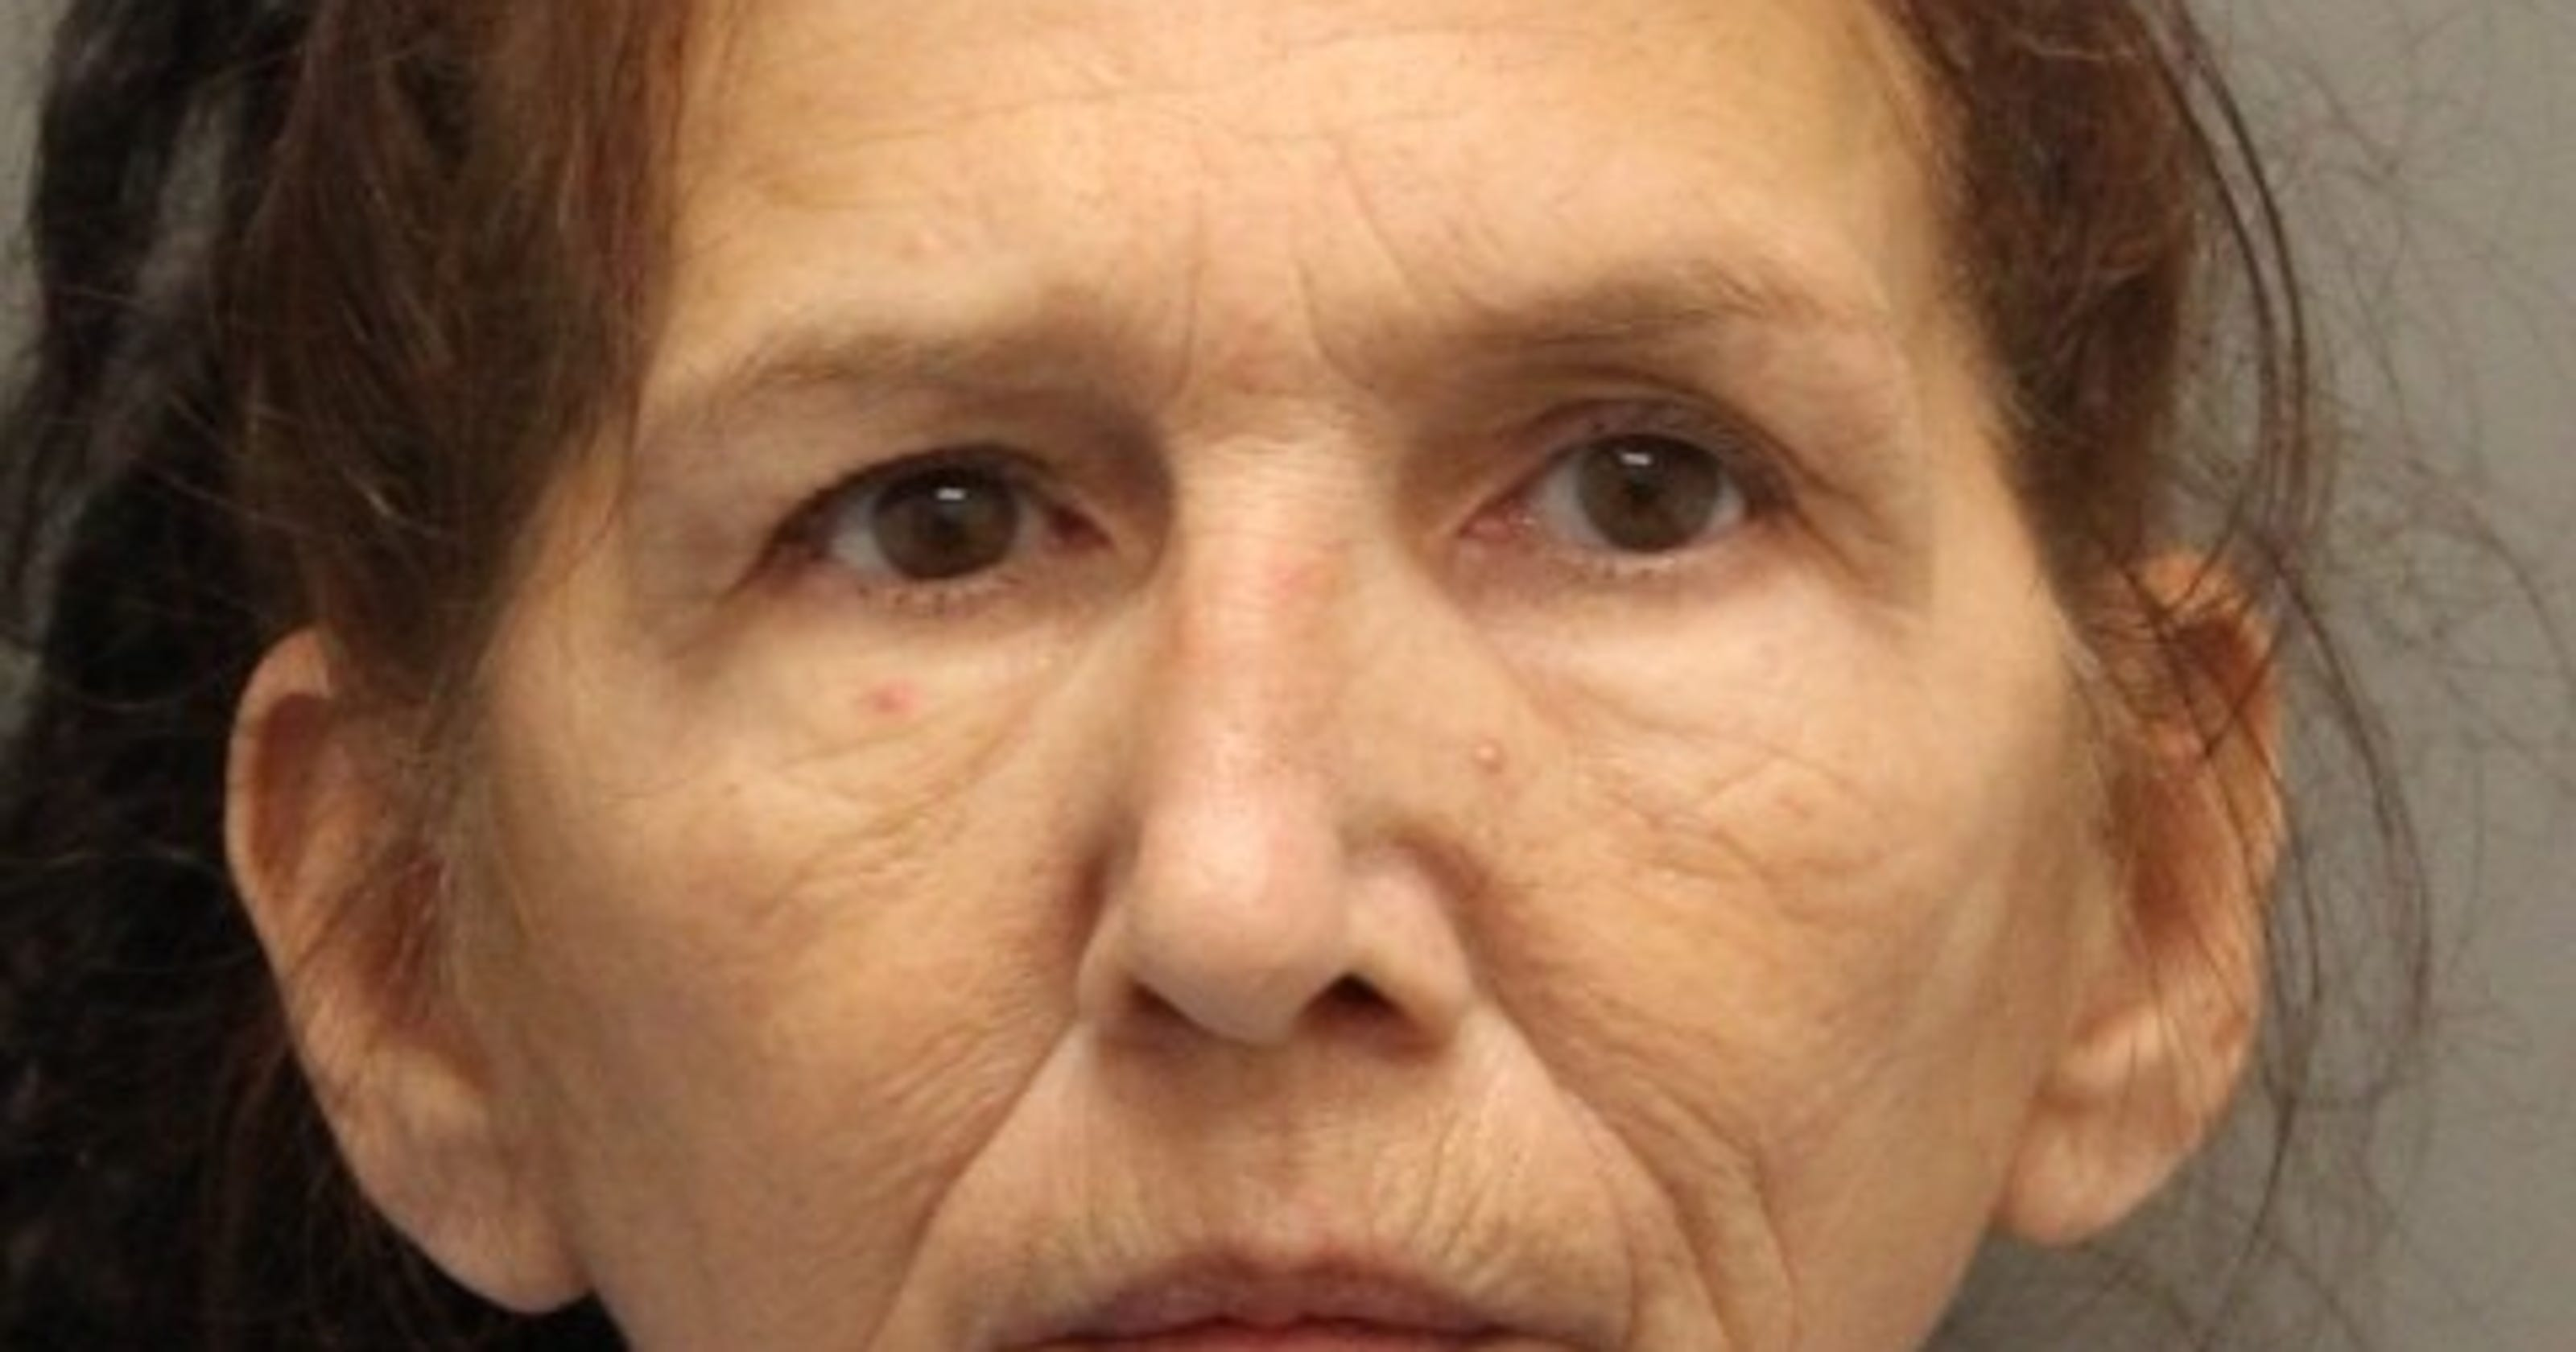 Police: Woman killed 3-year-old grandson